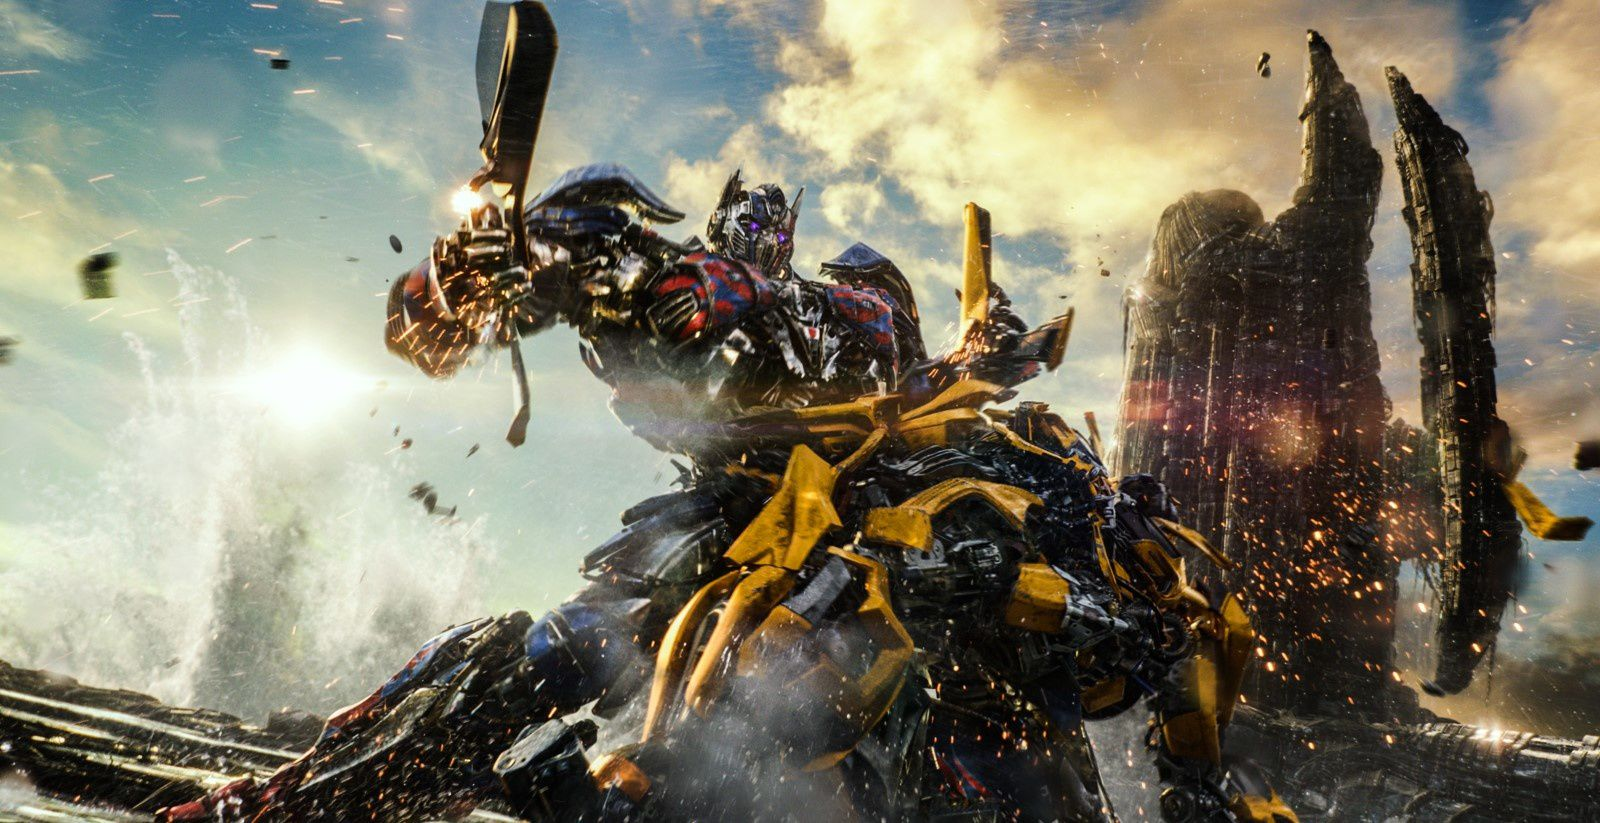 [critique] Transformers, the Last Knight